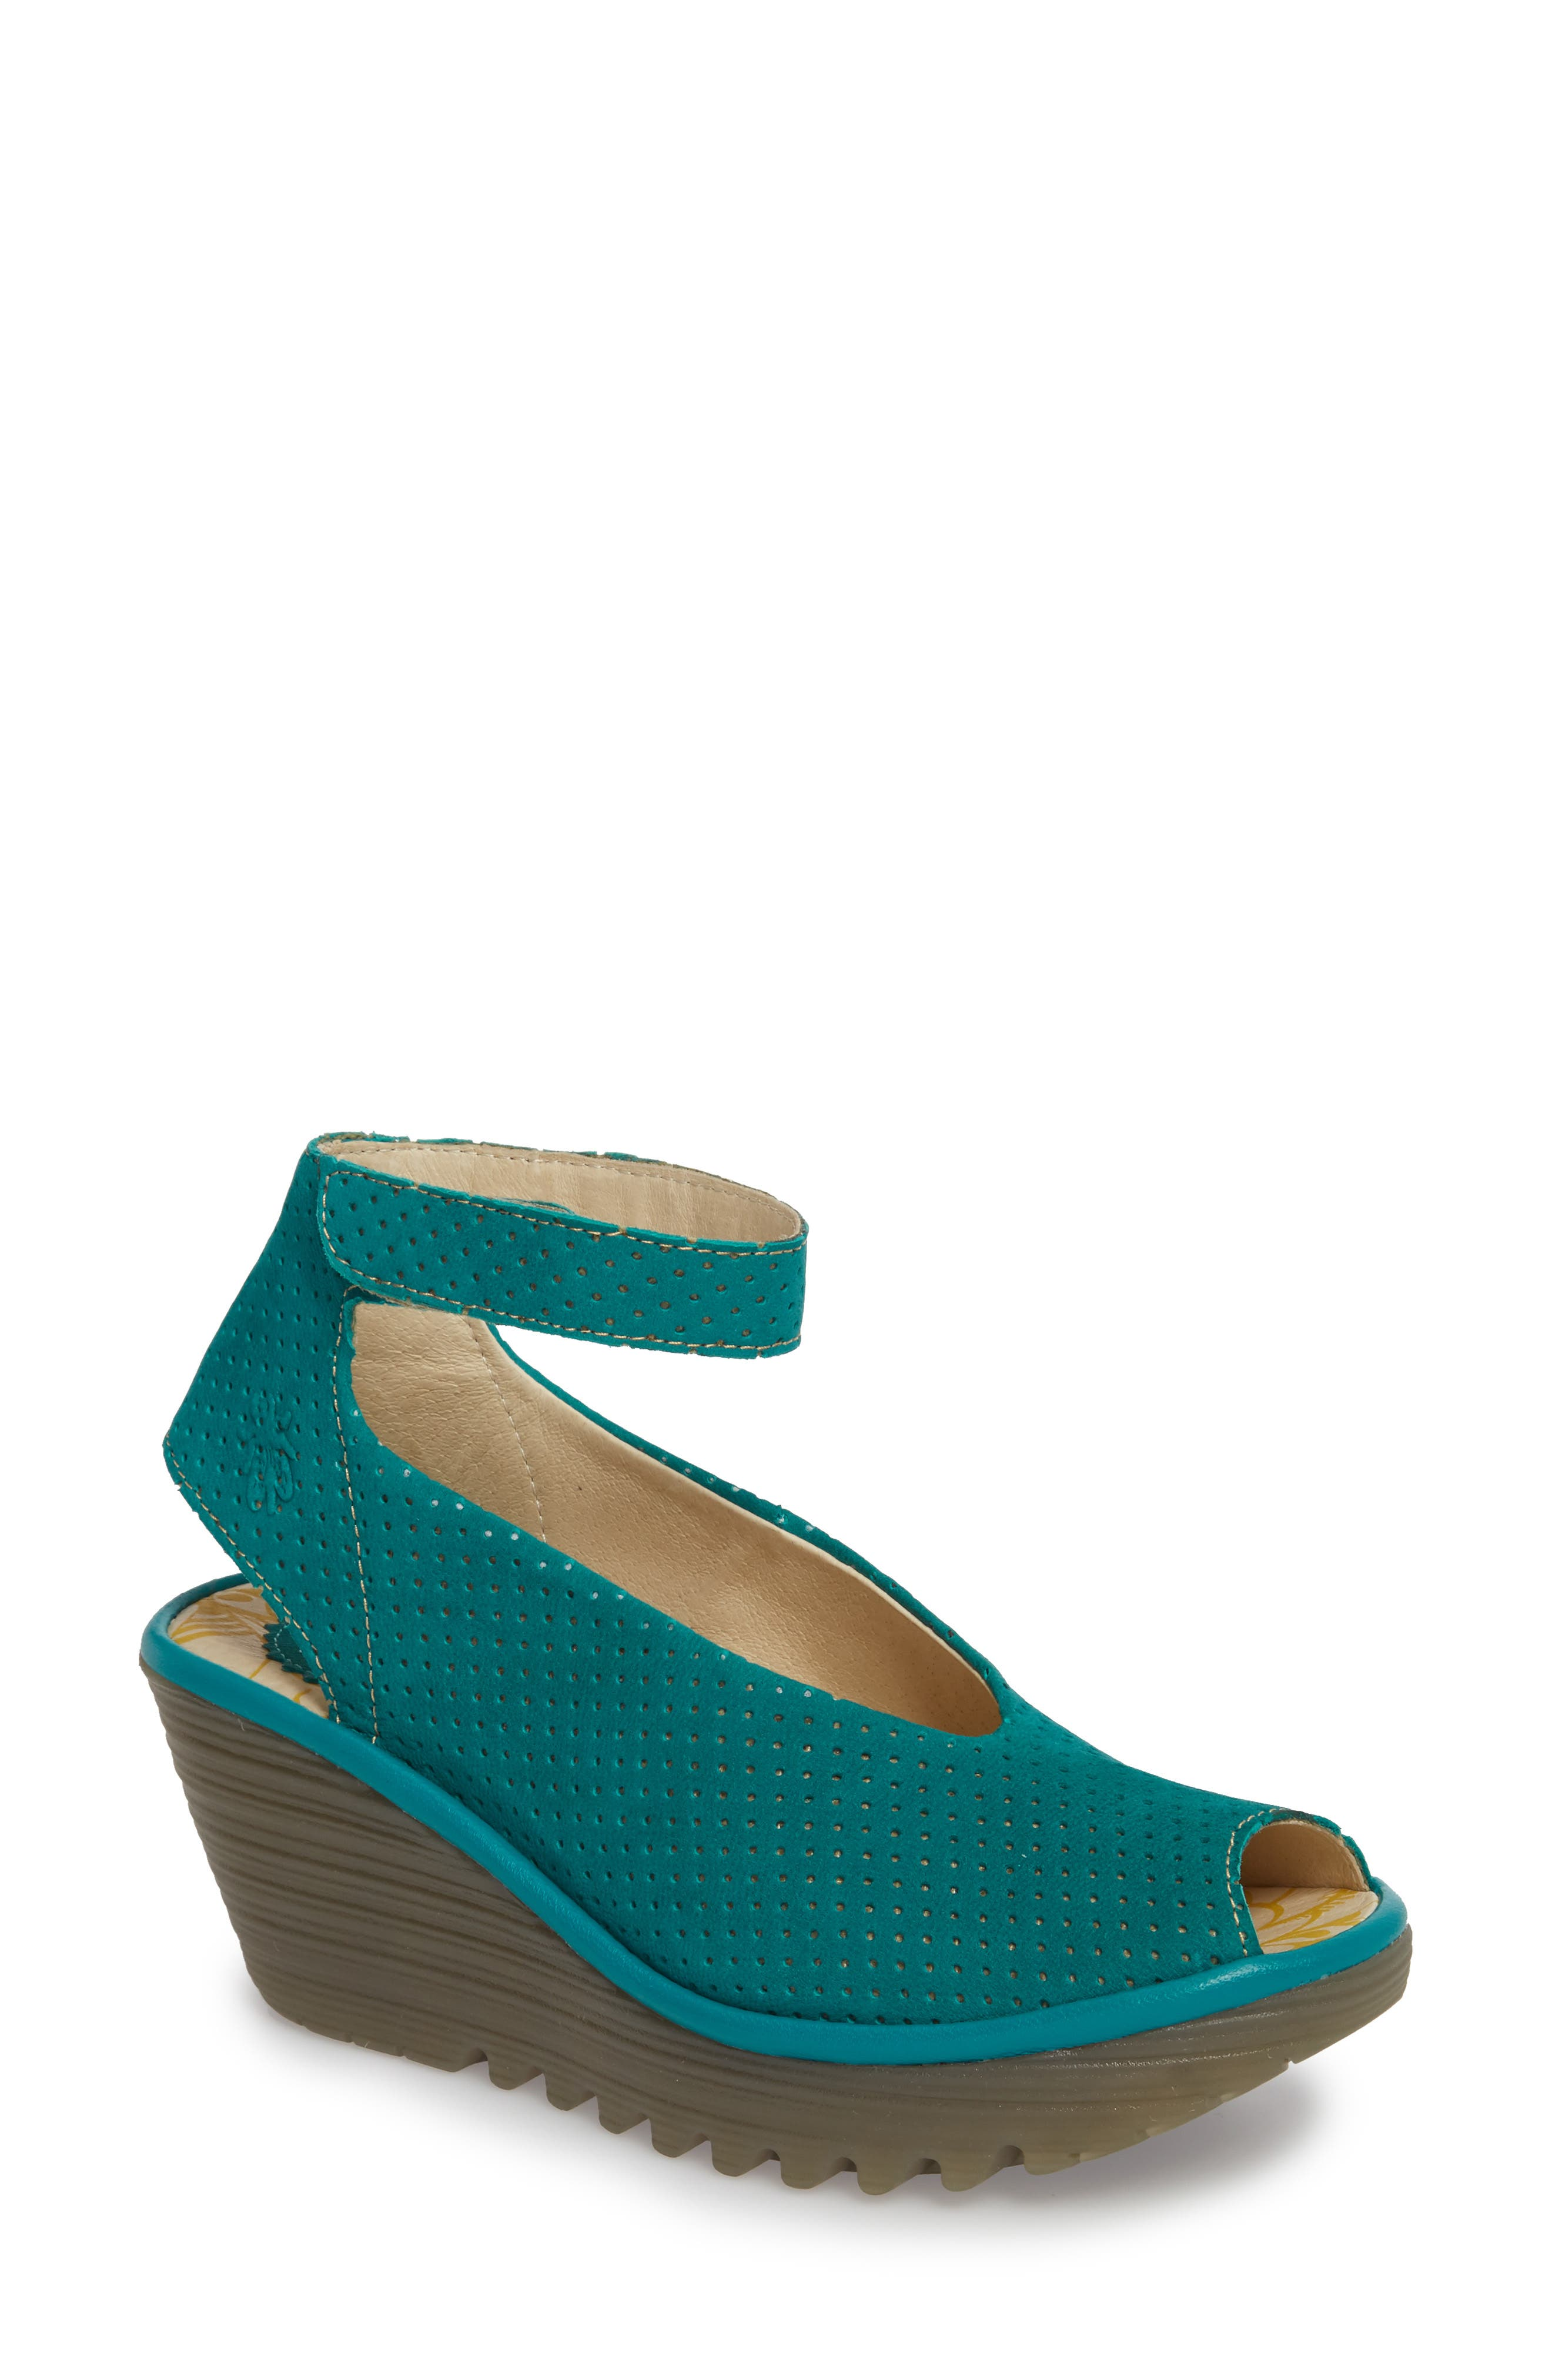 'Yala' Perforated Leather Sandal,                         Main,                         color, Green Leather